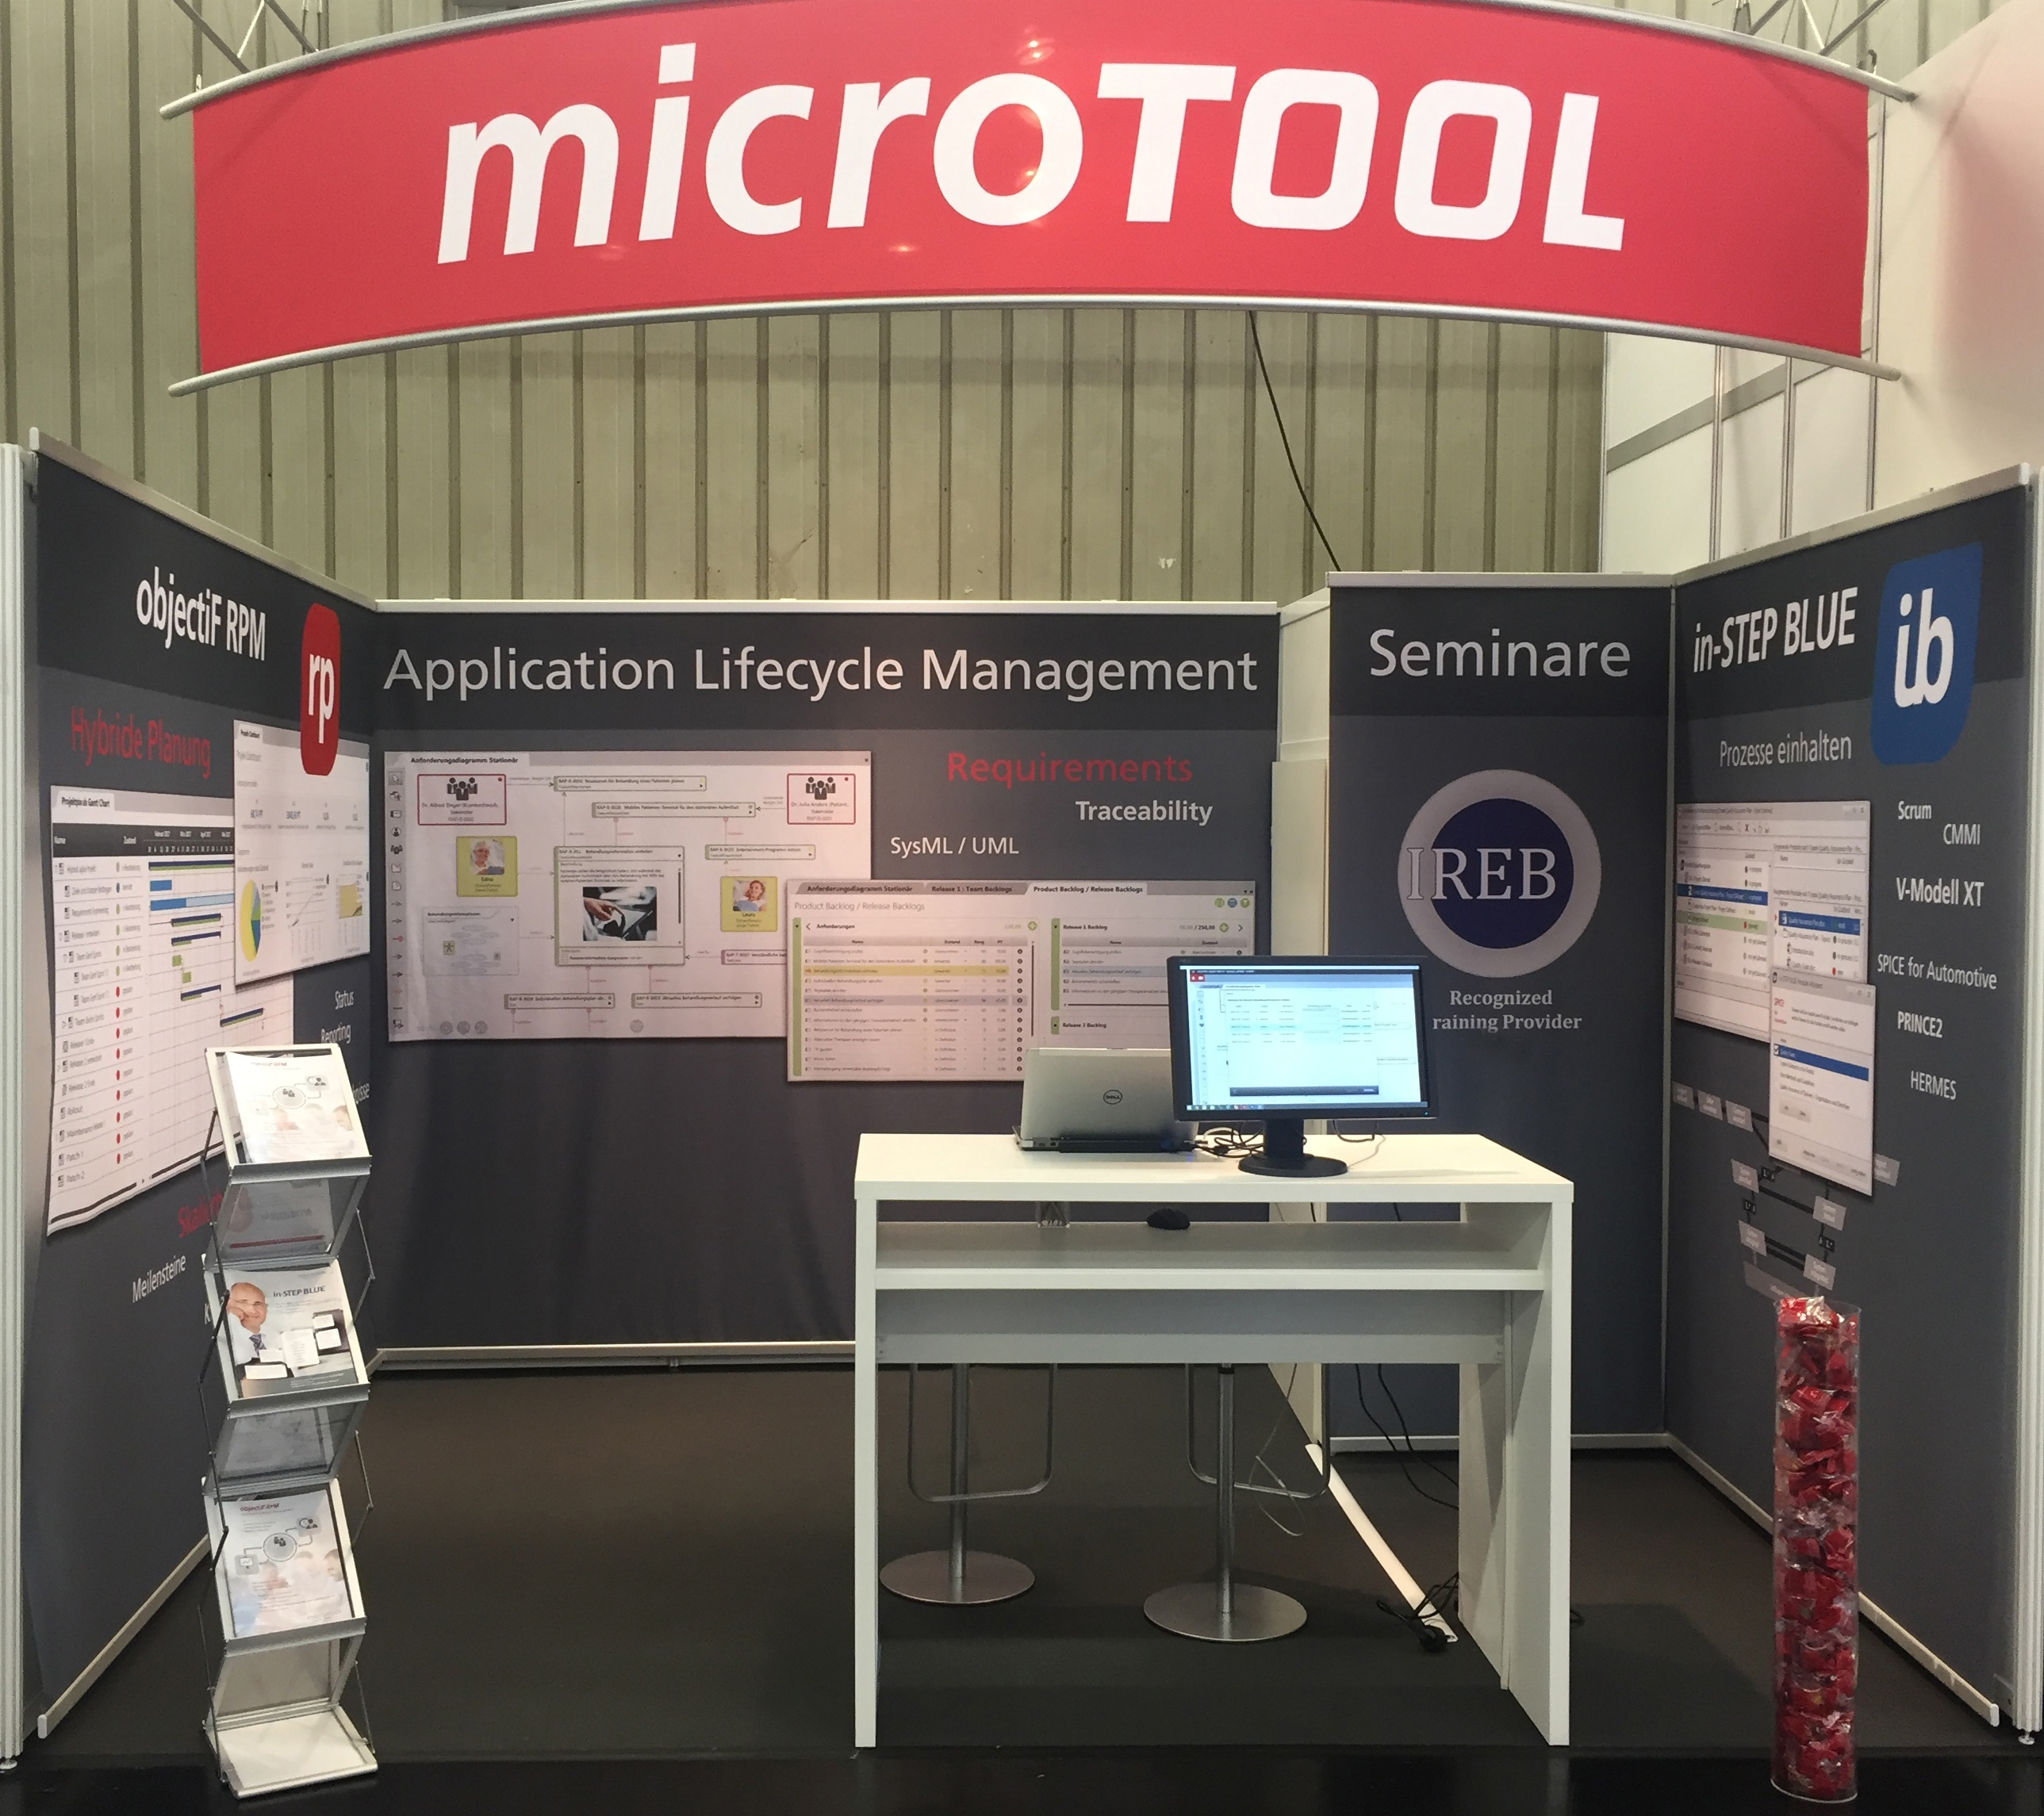 microTOOL at embedded world 2018